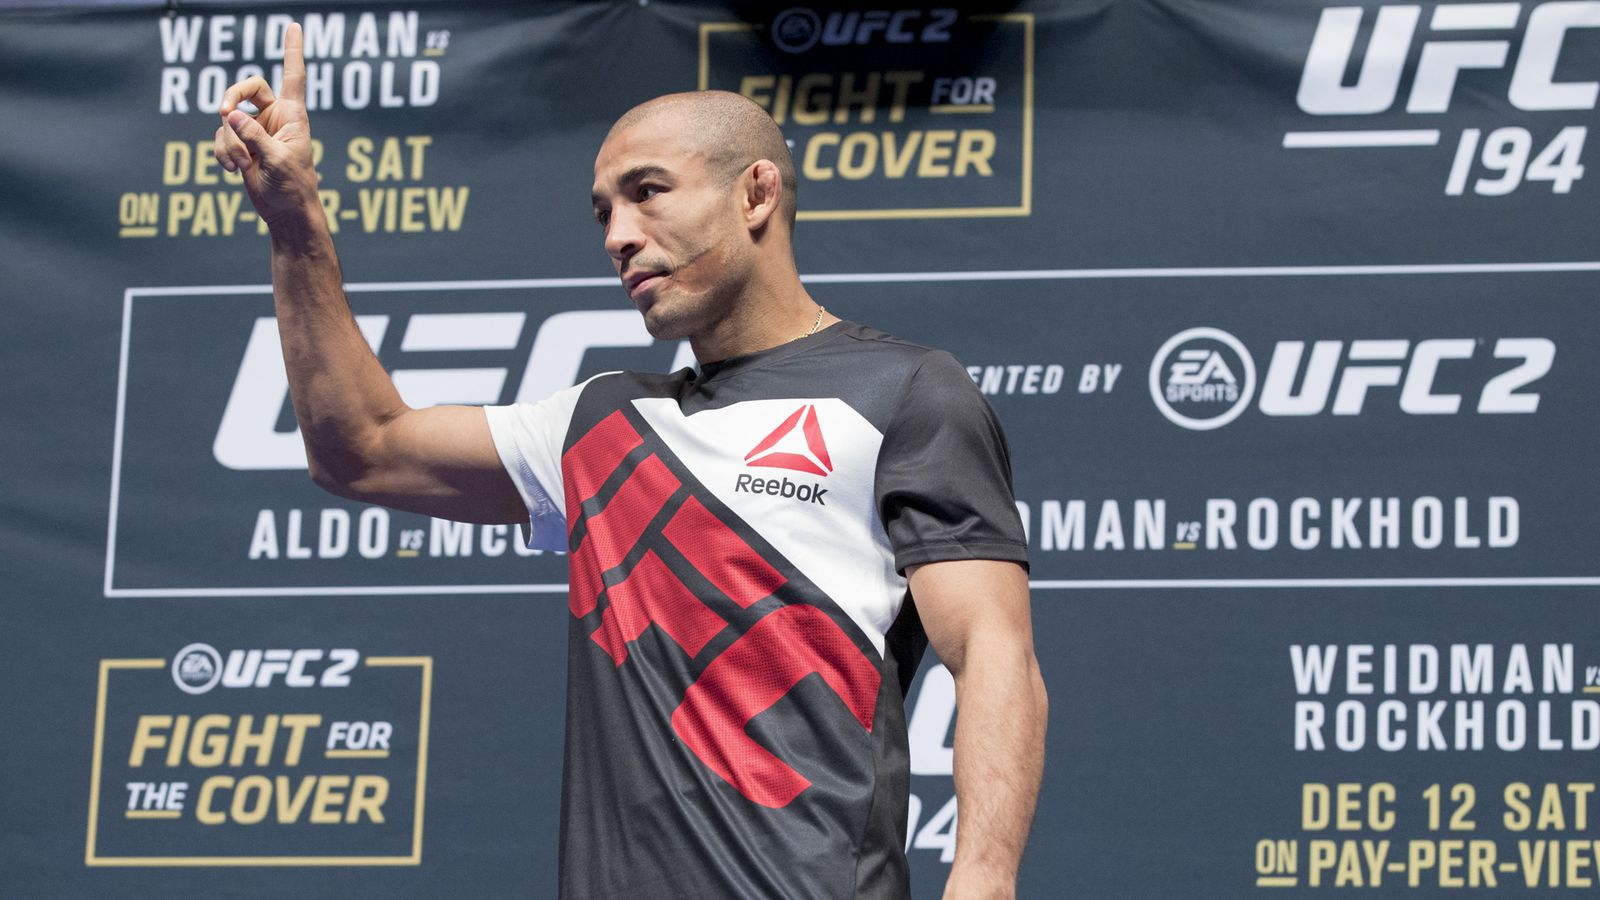 Jose Aldo says he wouldn't stay in the UFC even for Conor McGregor rematch